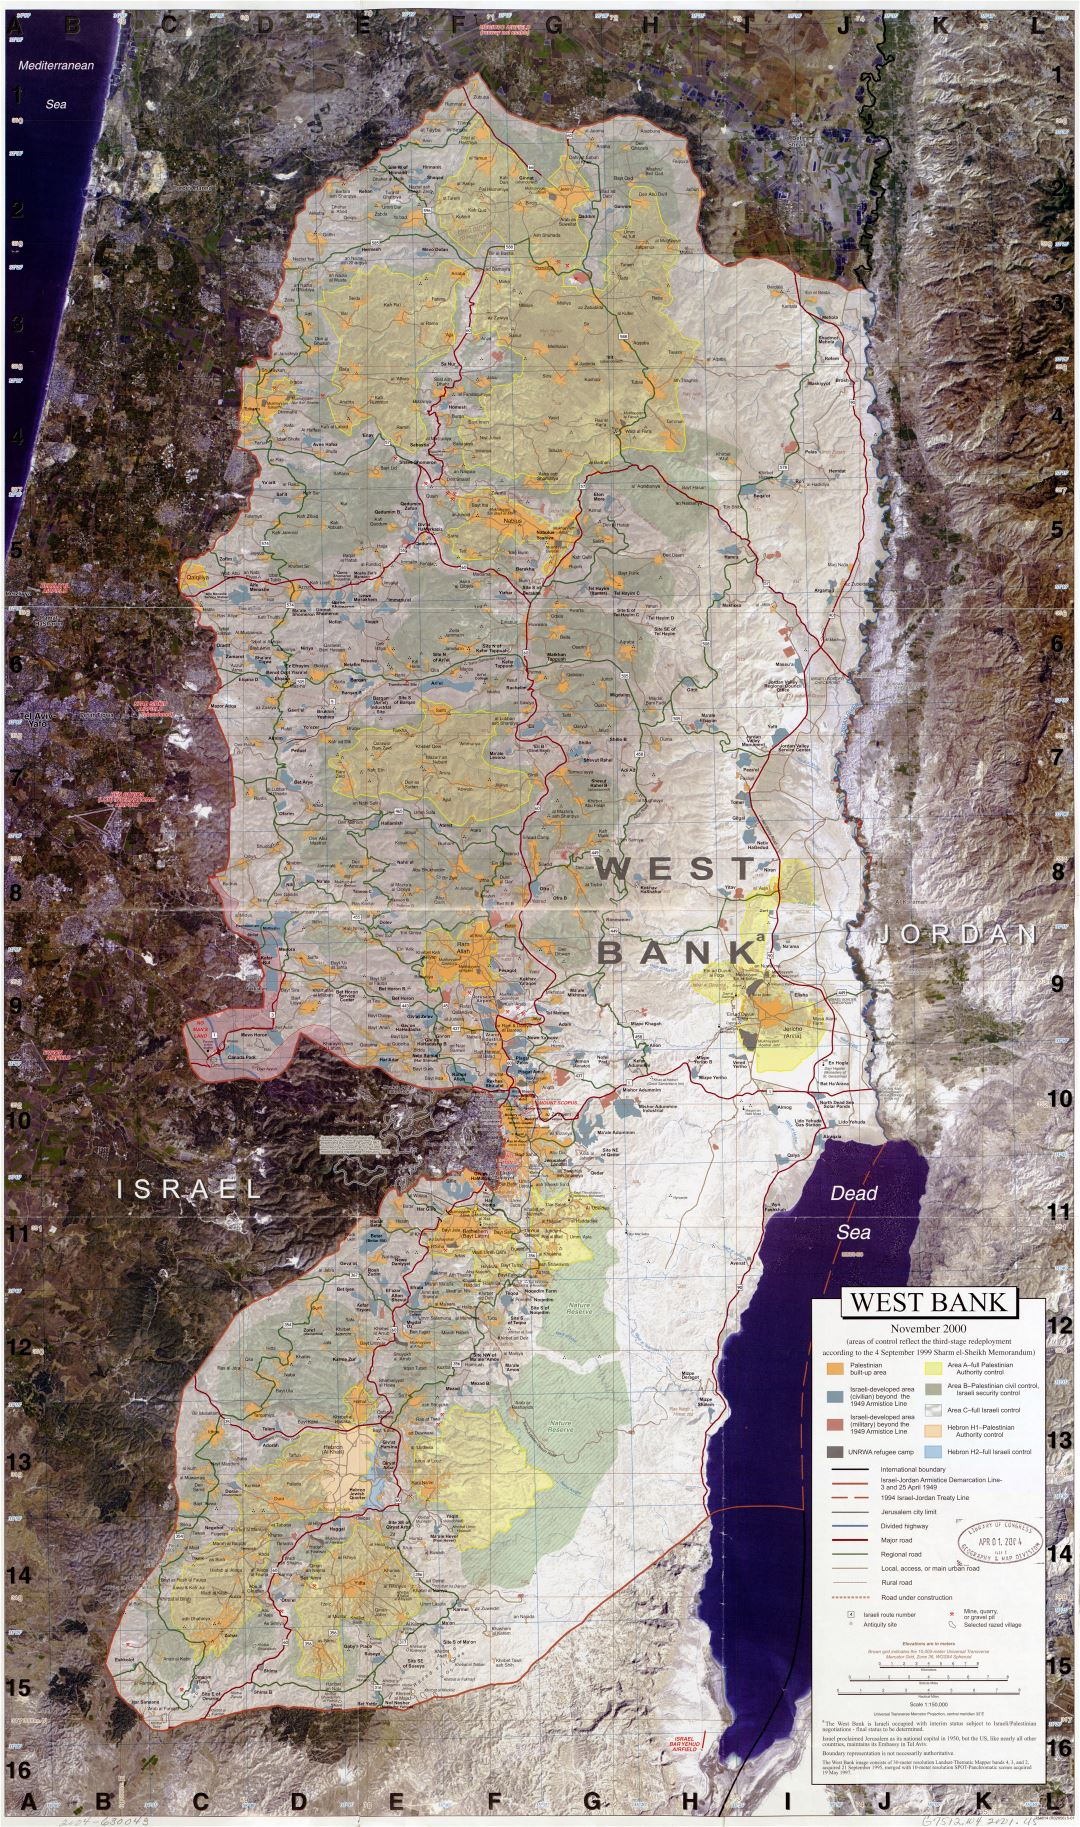 Large scale detailed map of West Bank with other marks - 2001